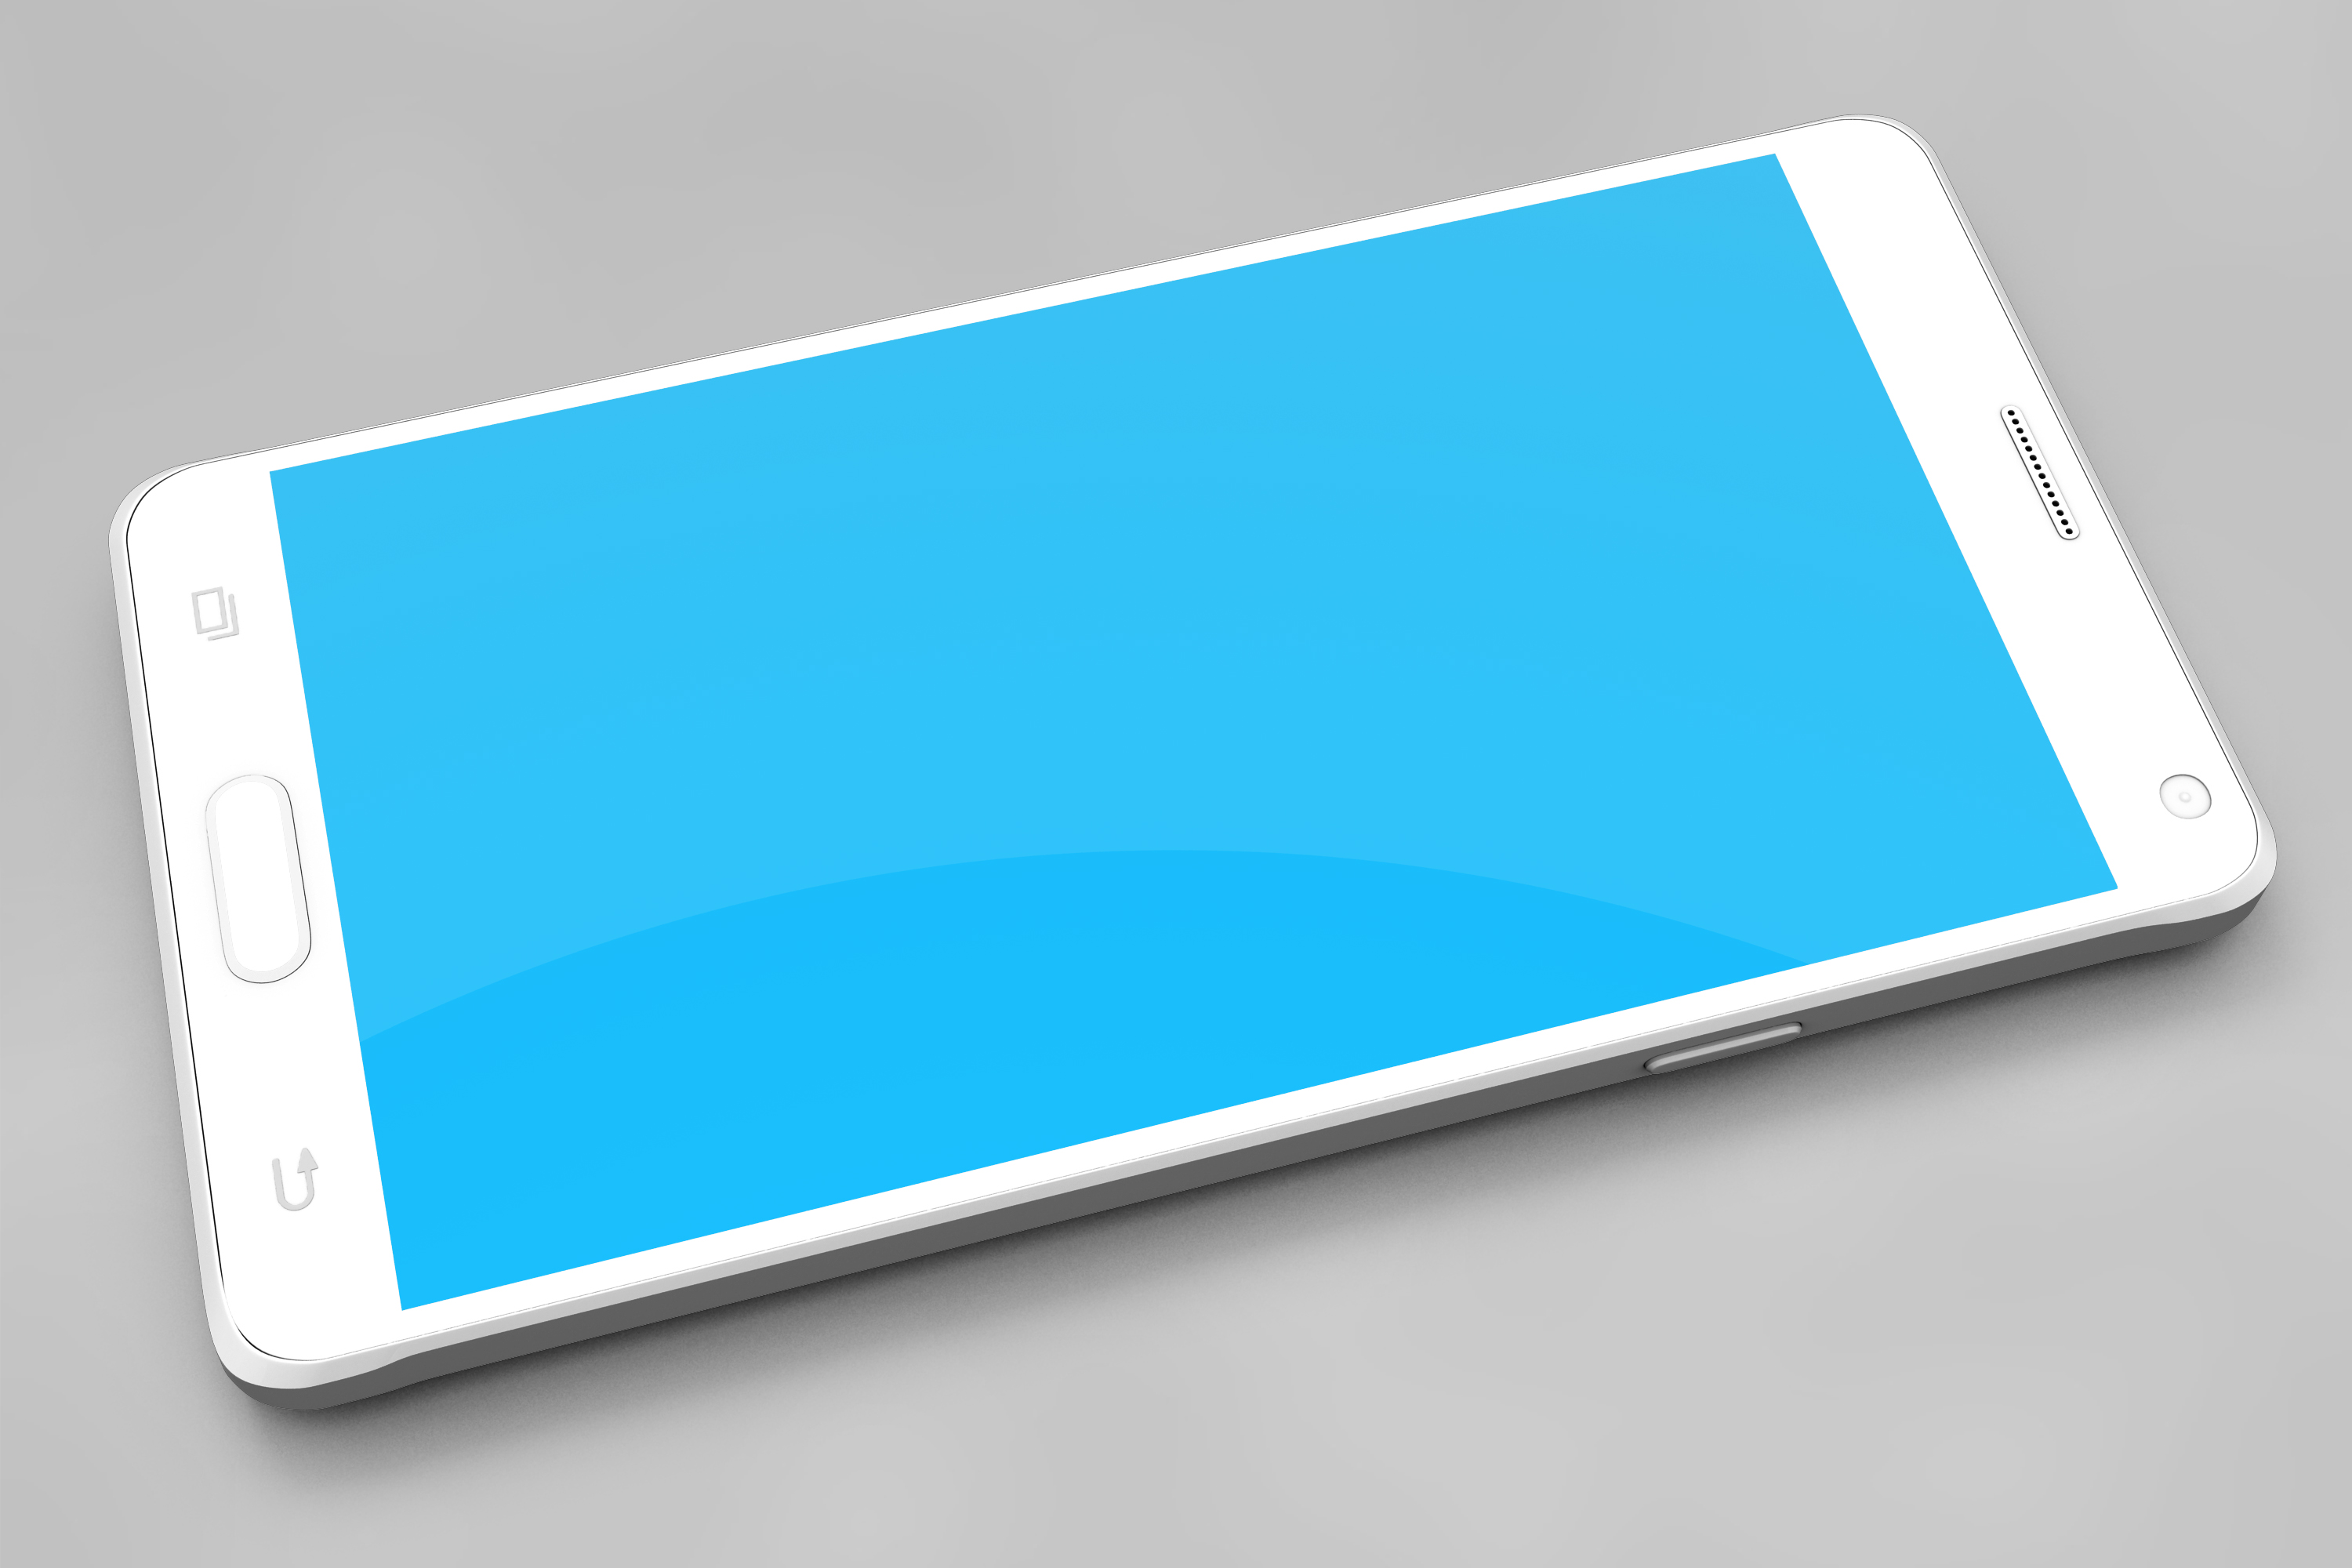 Samsung Galaxy Note 4 Mock-up example image 5